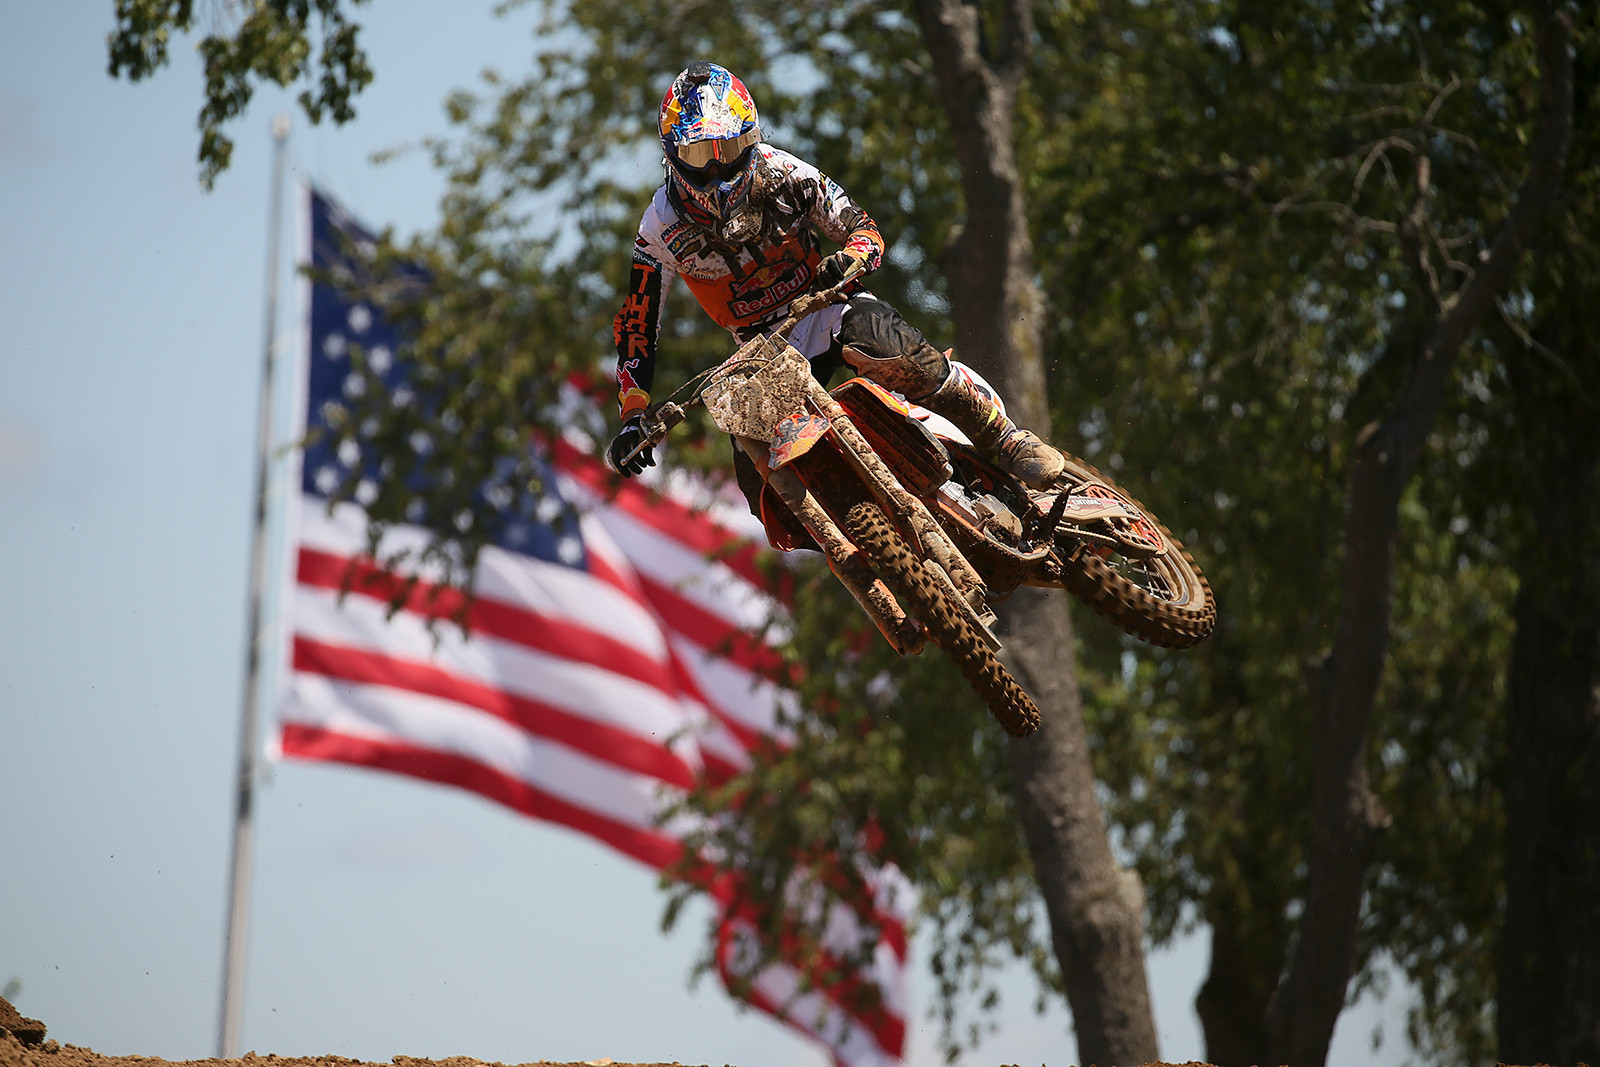 Marvin Musquin to Sit Out of Motocross of Nations